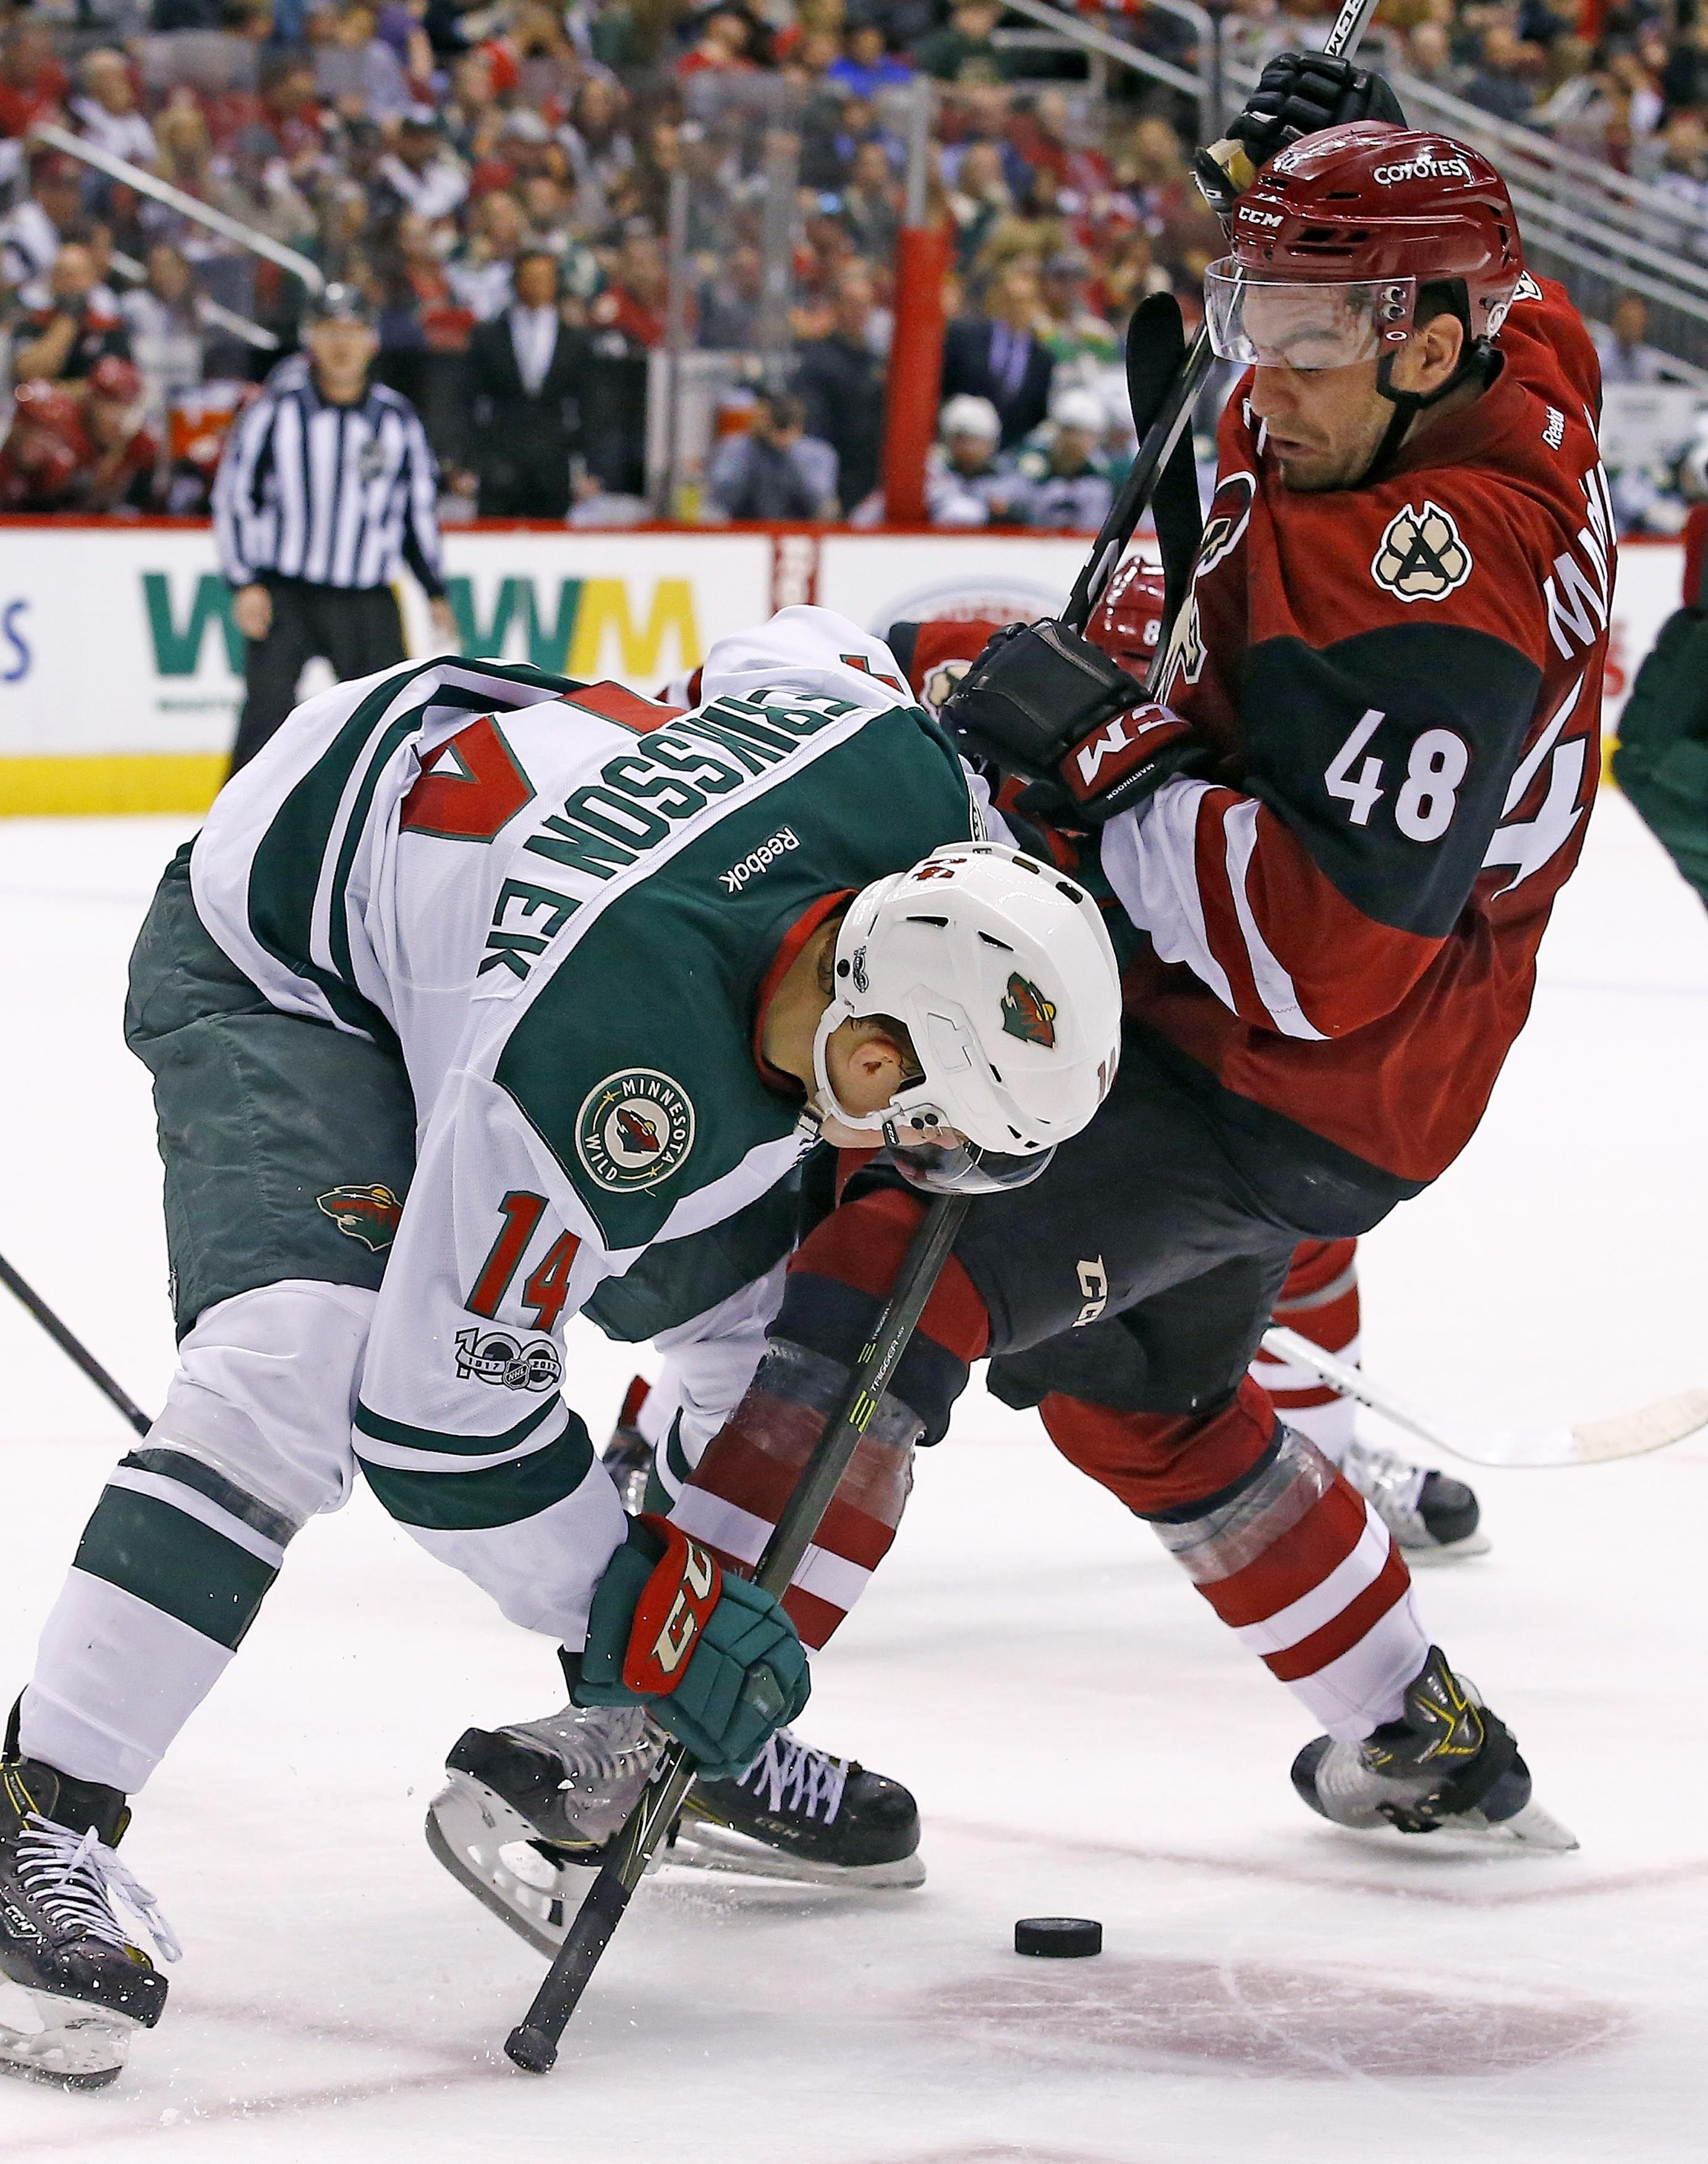 Wild_coyotes_hockey_90051